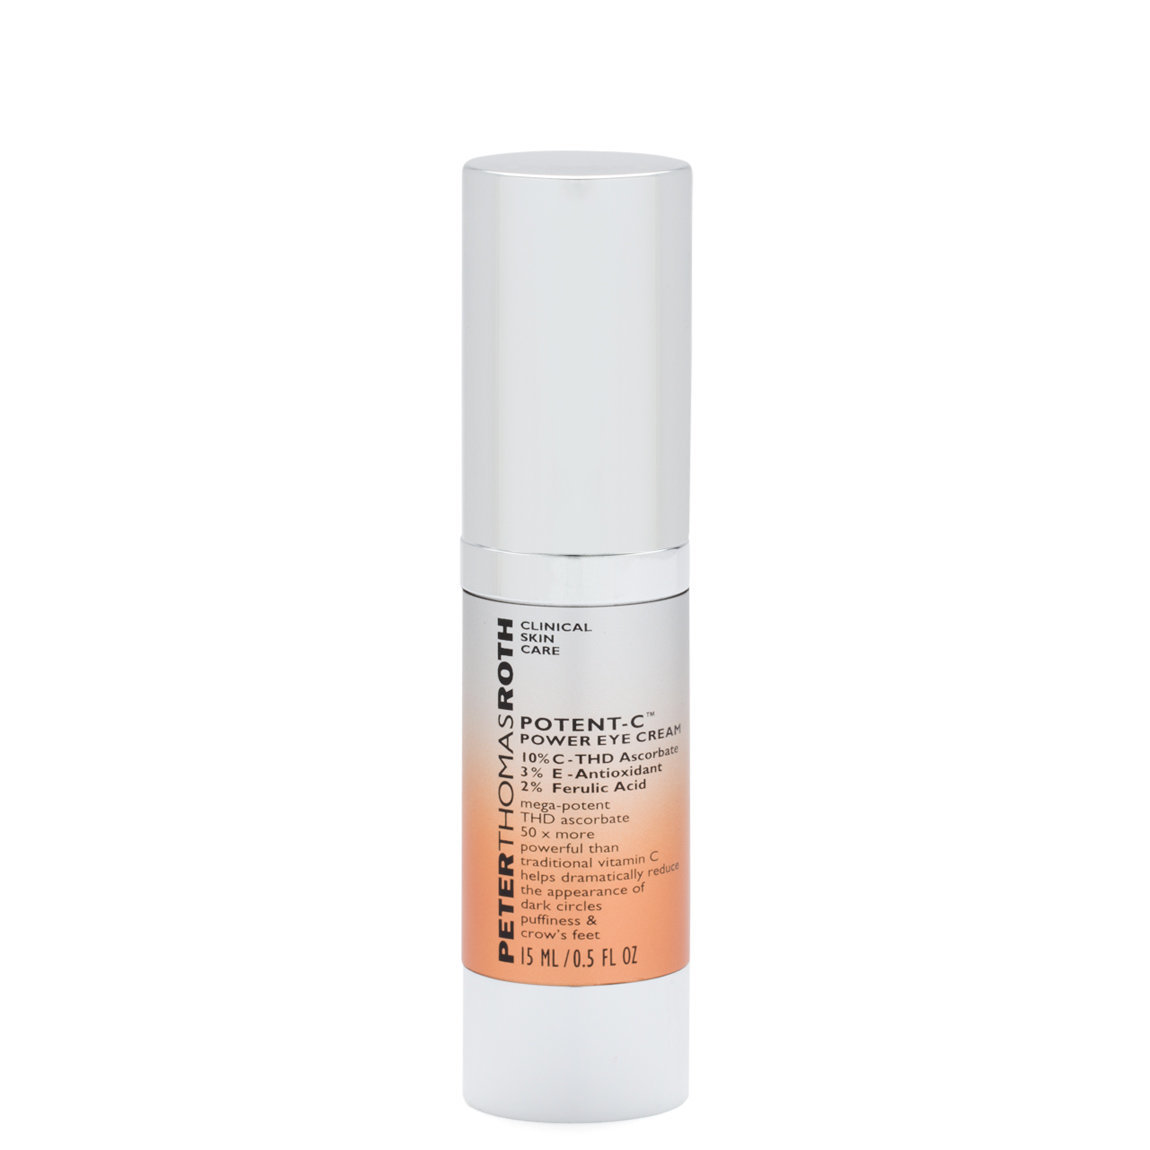 Peter Thomas Roth Potent-C Power Eye Cream product swatch.